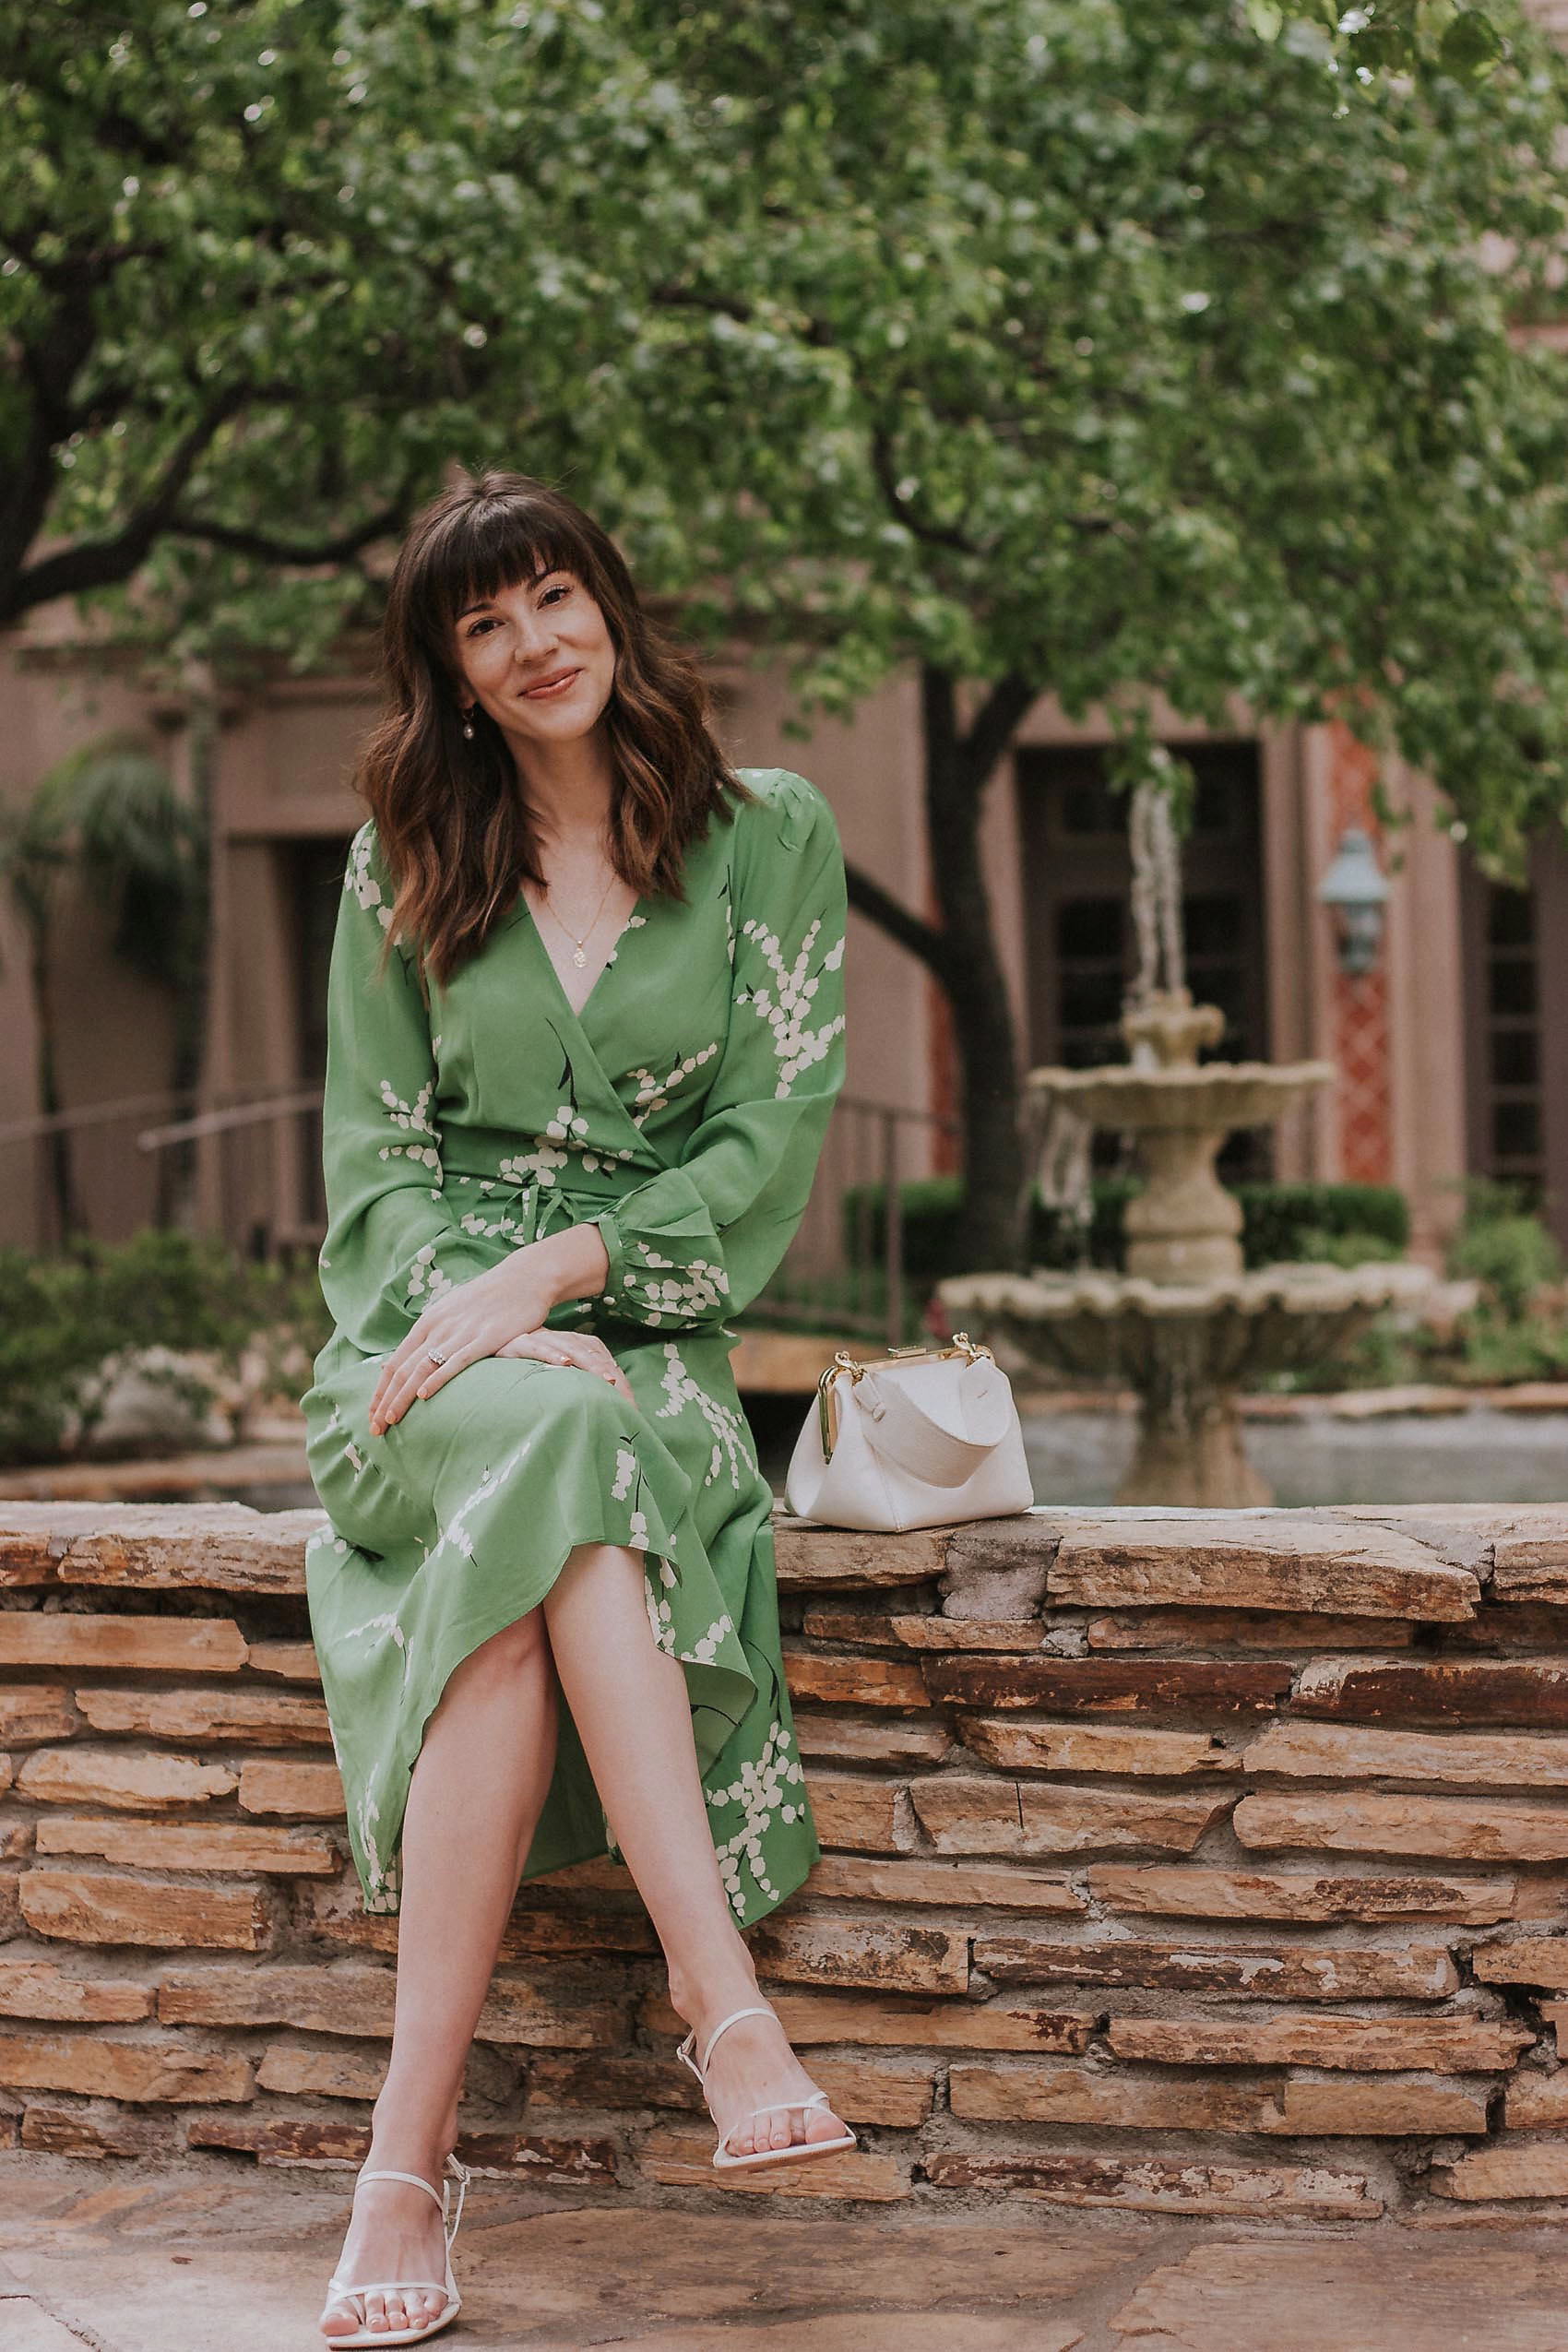 Los Angeles Style Blogger wearing Realisation Par green midi dress with Zara Sandals and Clare V Bag